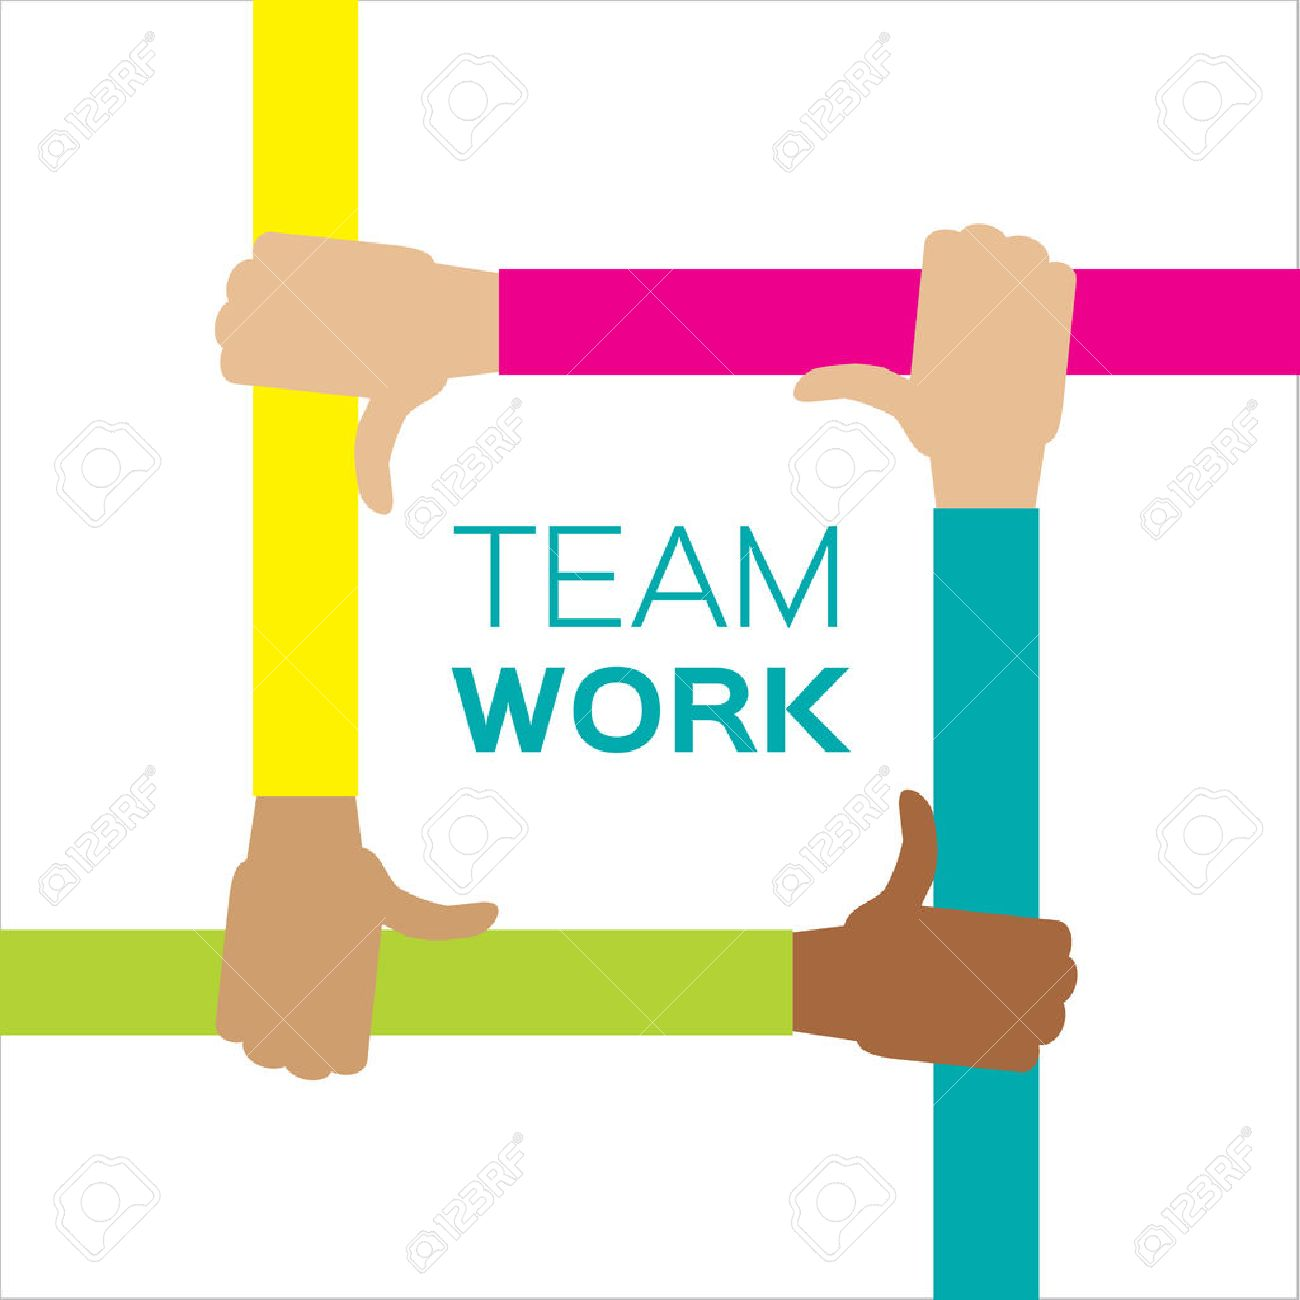 Four hands together team work. Hands of different colors, cultural and ethnic diversity. Vector illustration - 53256758